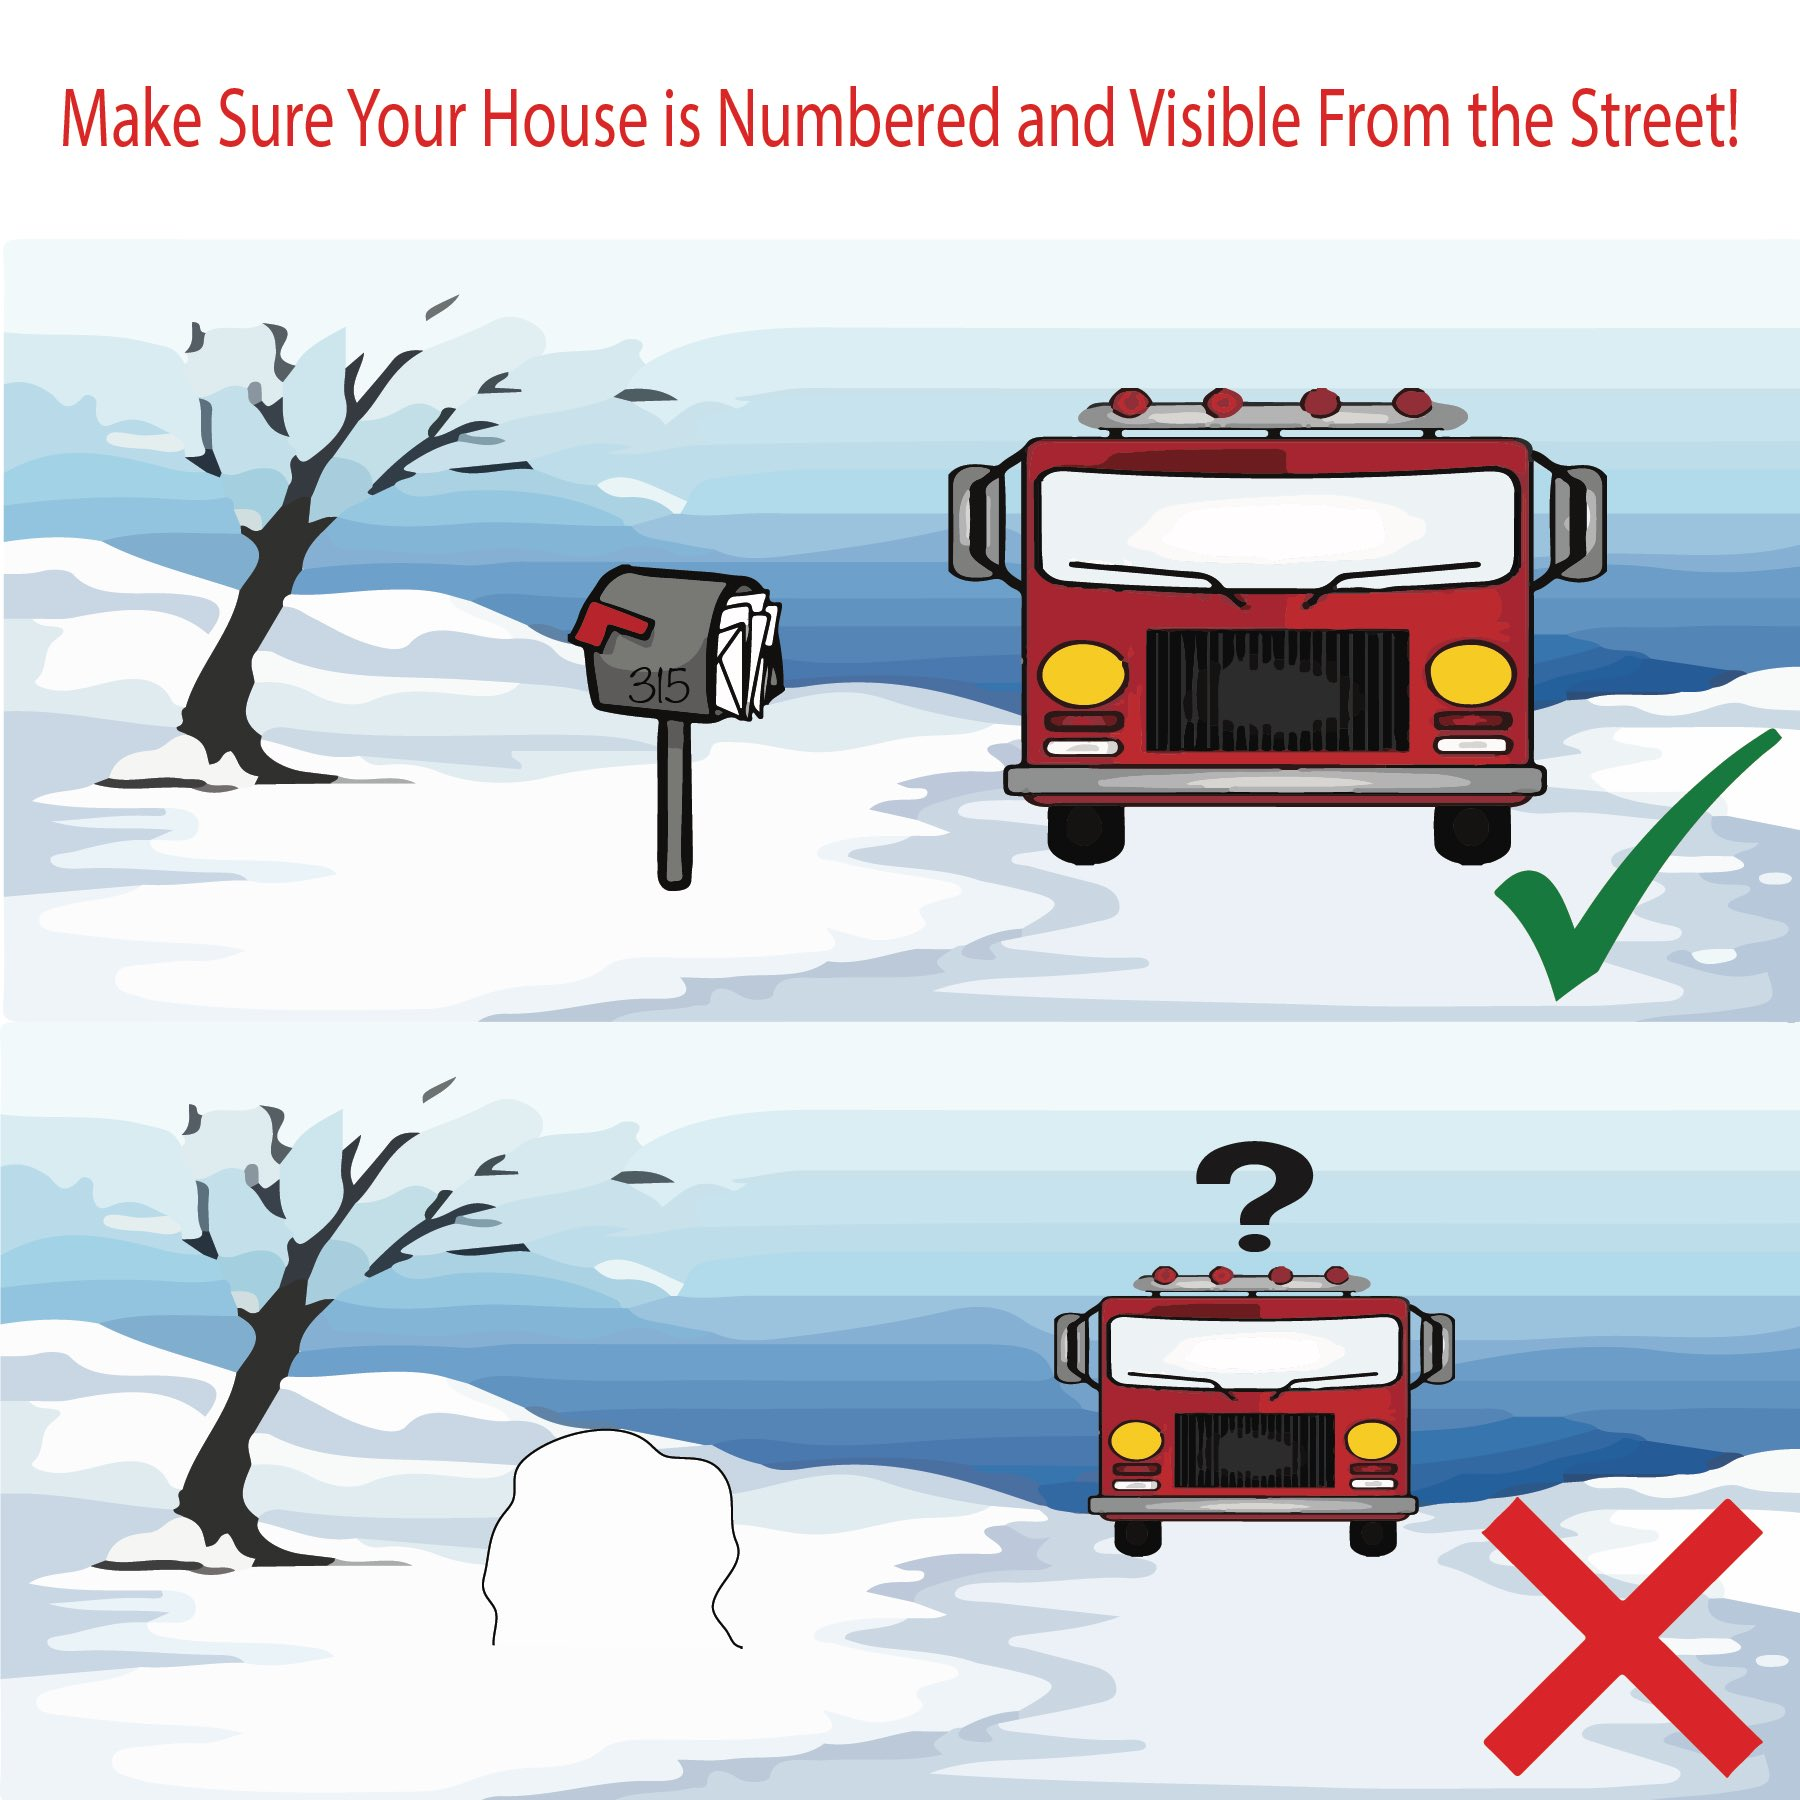 Friendly reminder from Franklin Fire Dept.